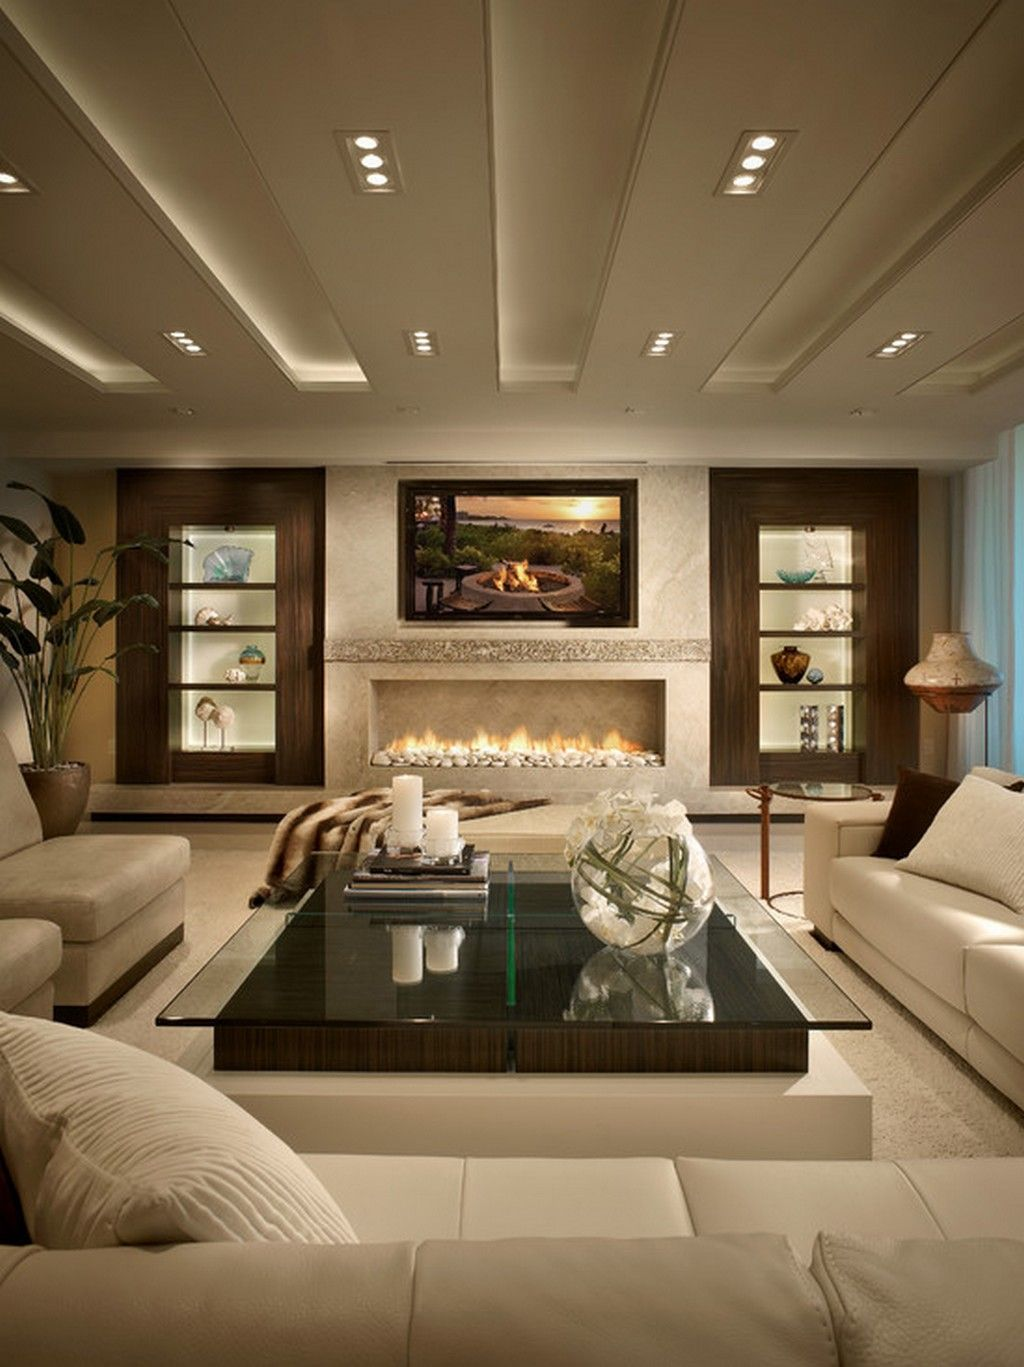 Get inspired with these modern living room decorating ideas also best arredamenti images on pinterest my house country homes